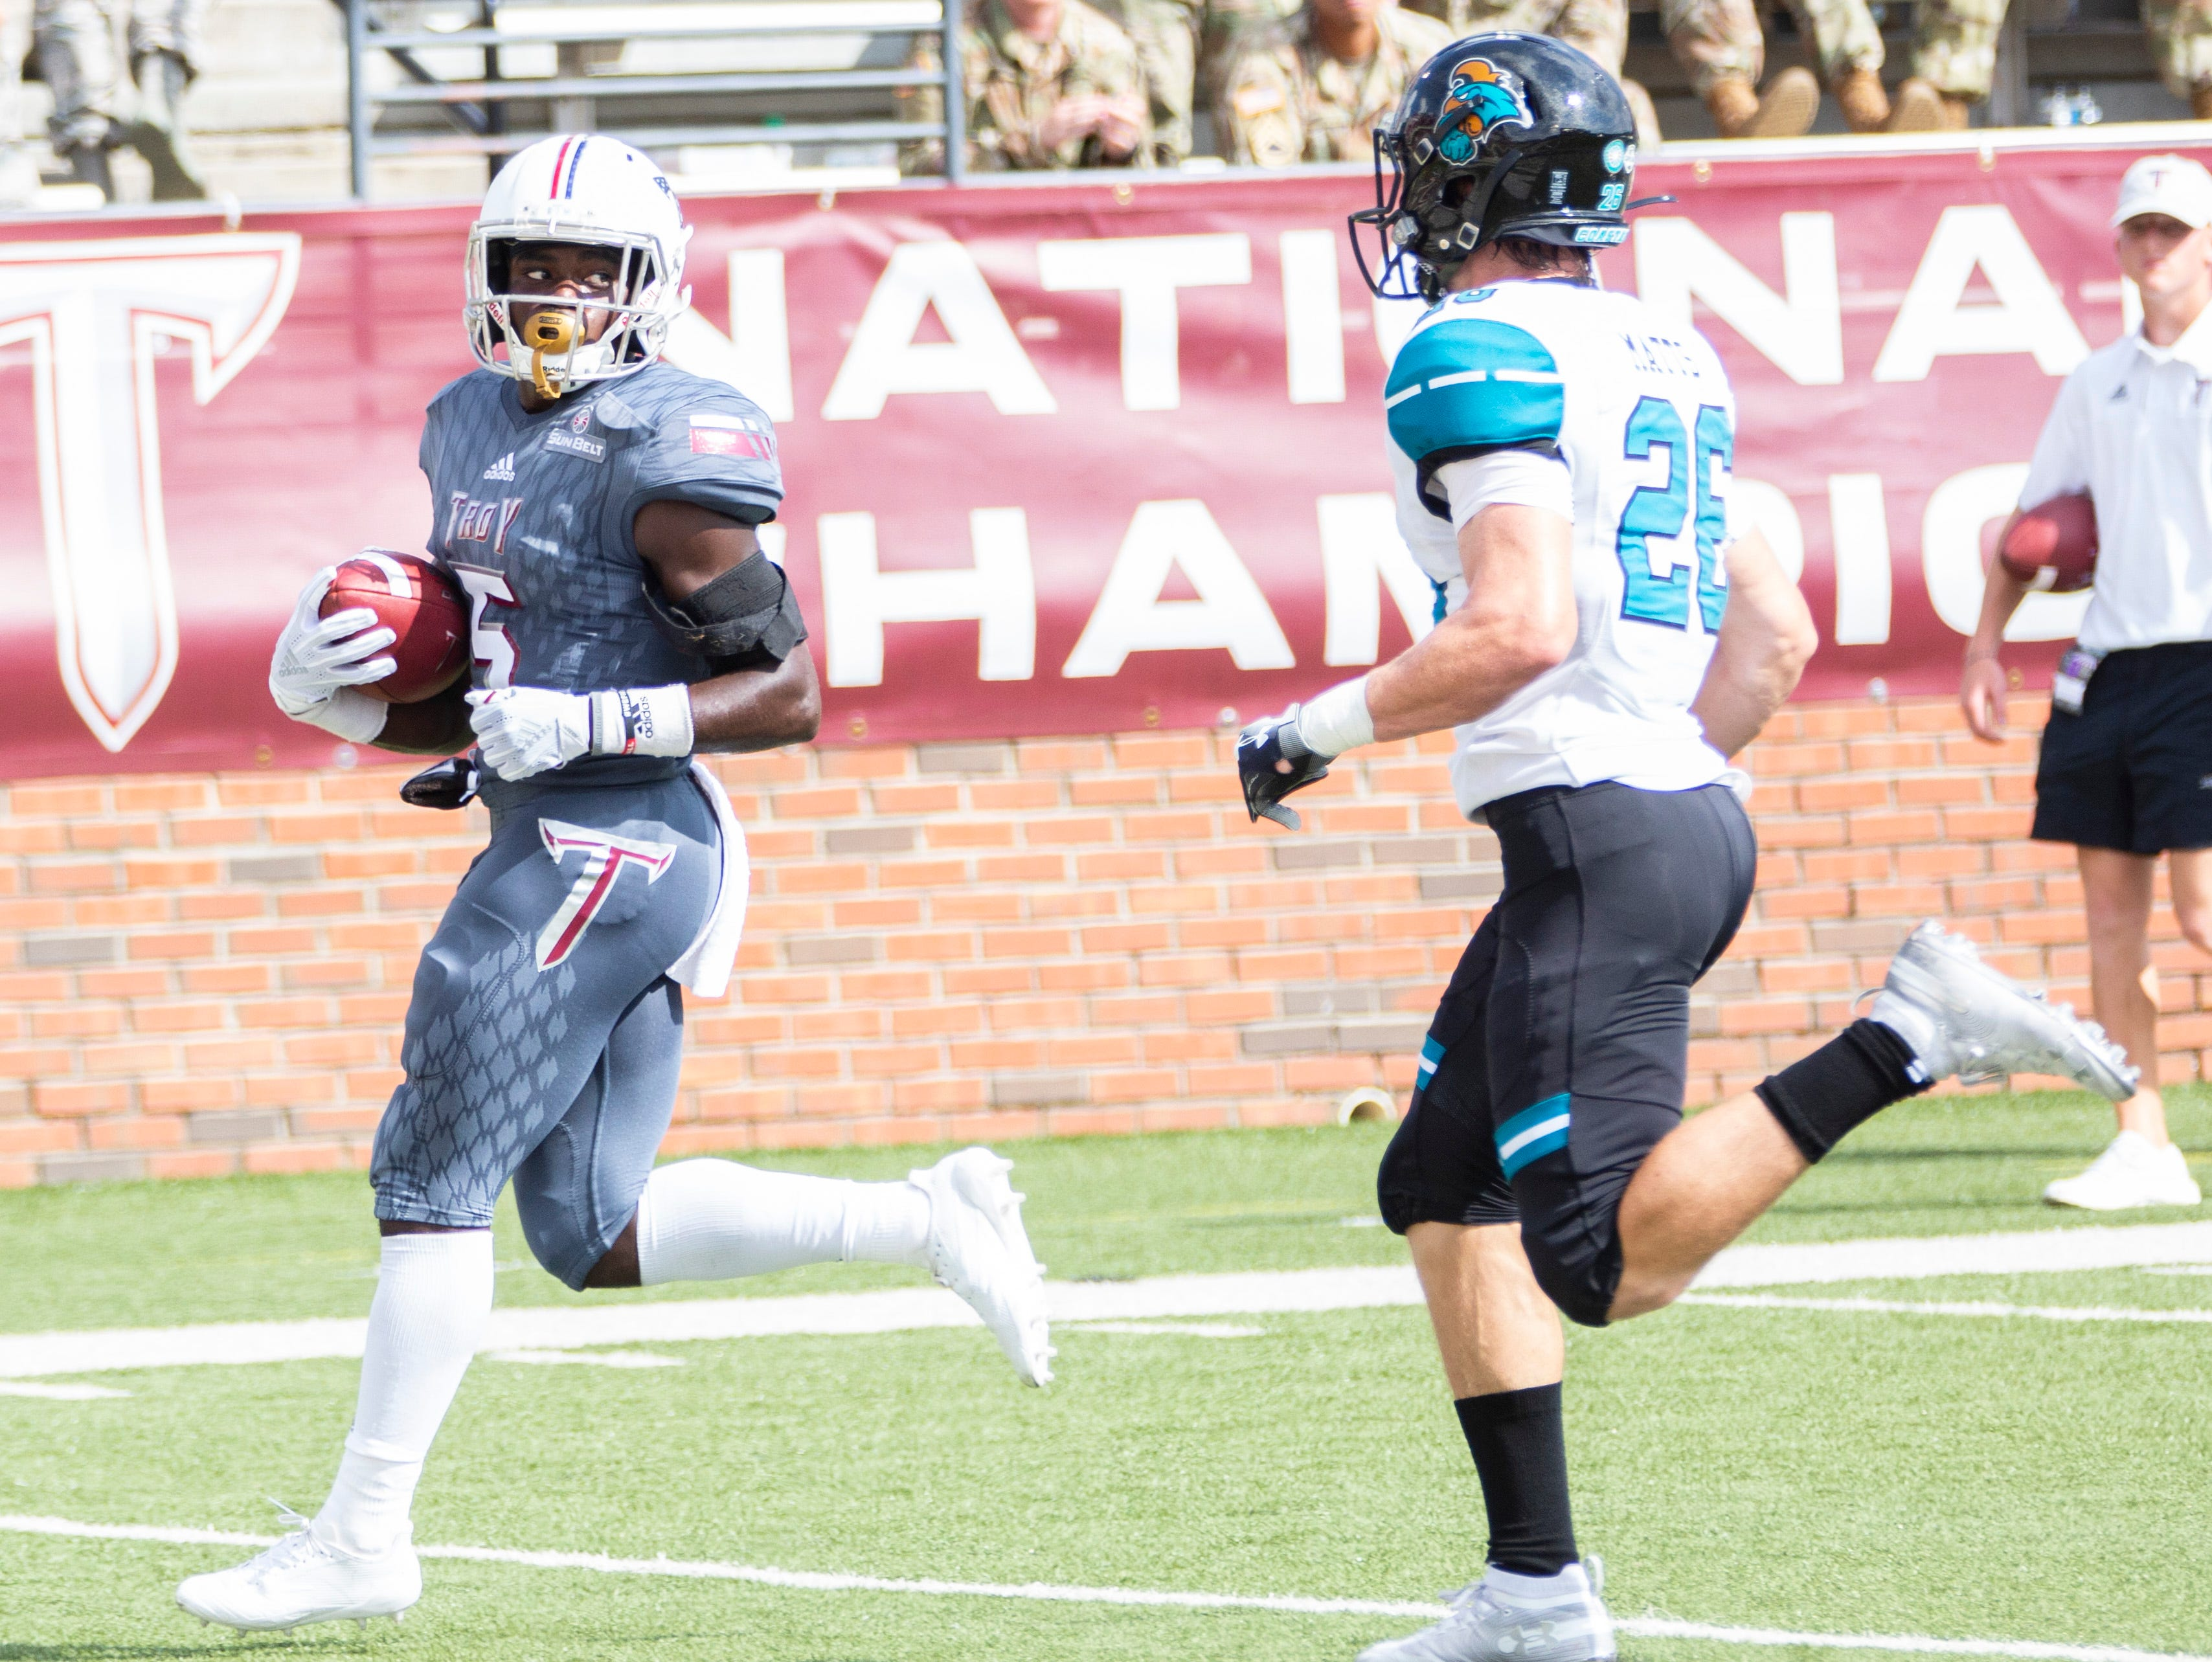 Troy's Sidney Davis coasts into the end zone for the Trojan's second touchdown of the game.